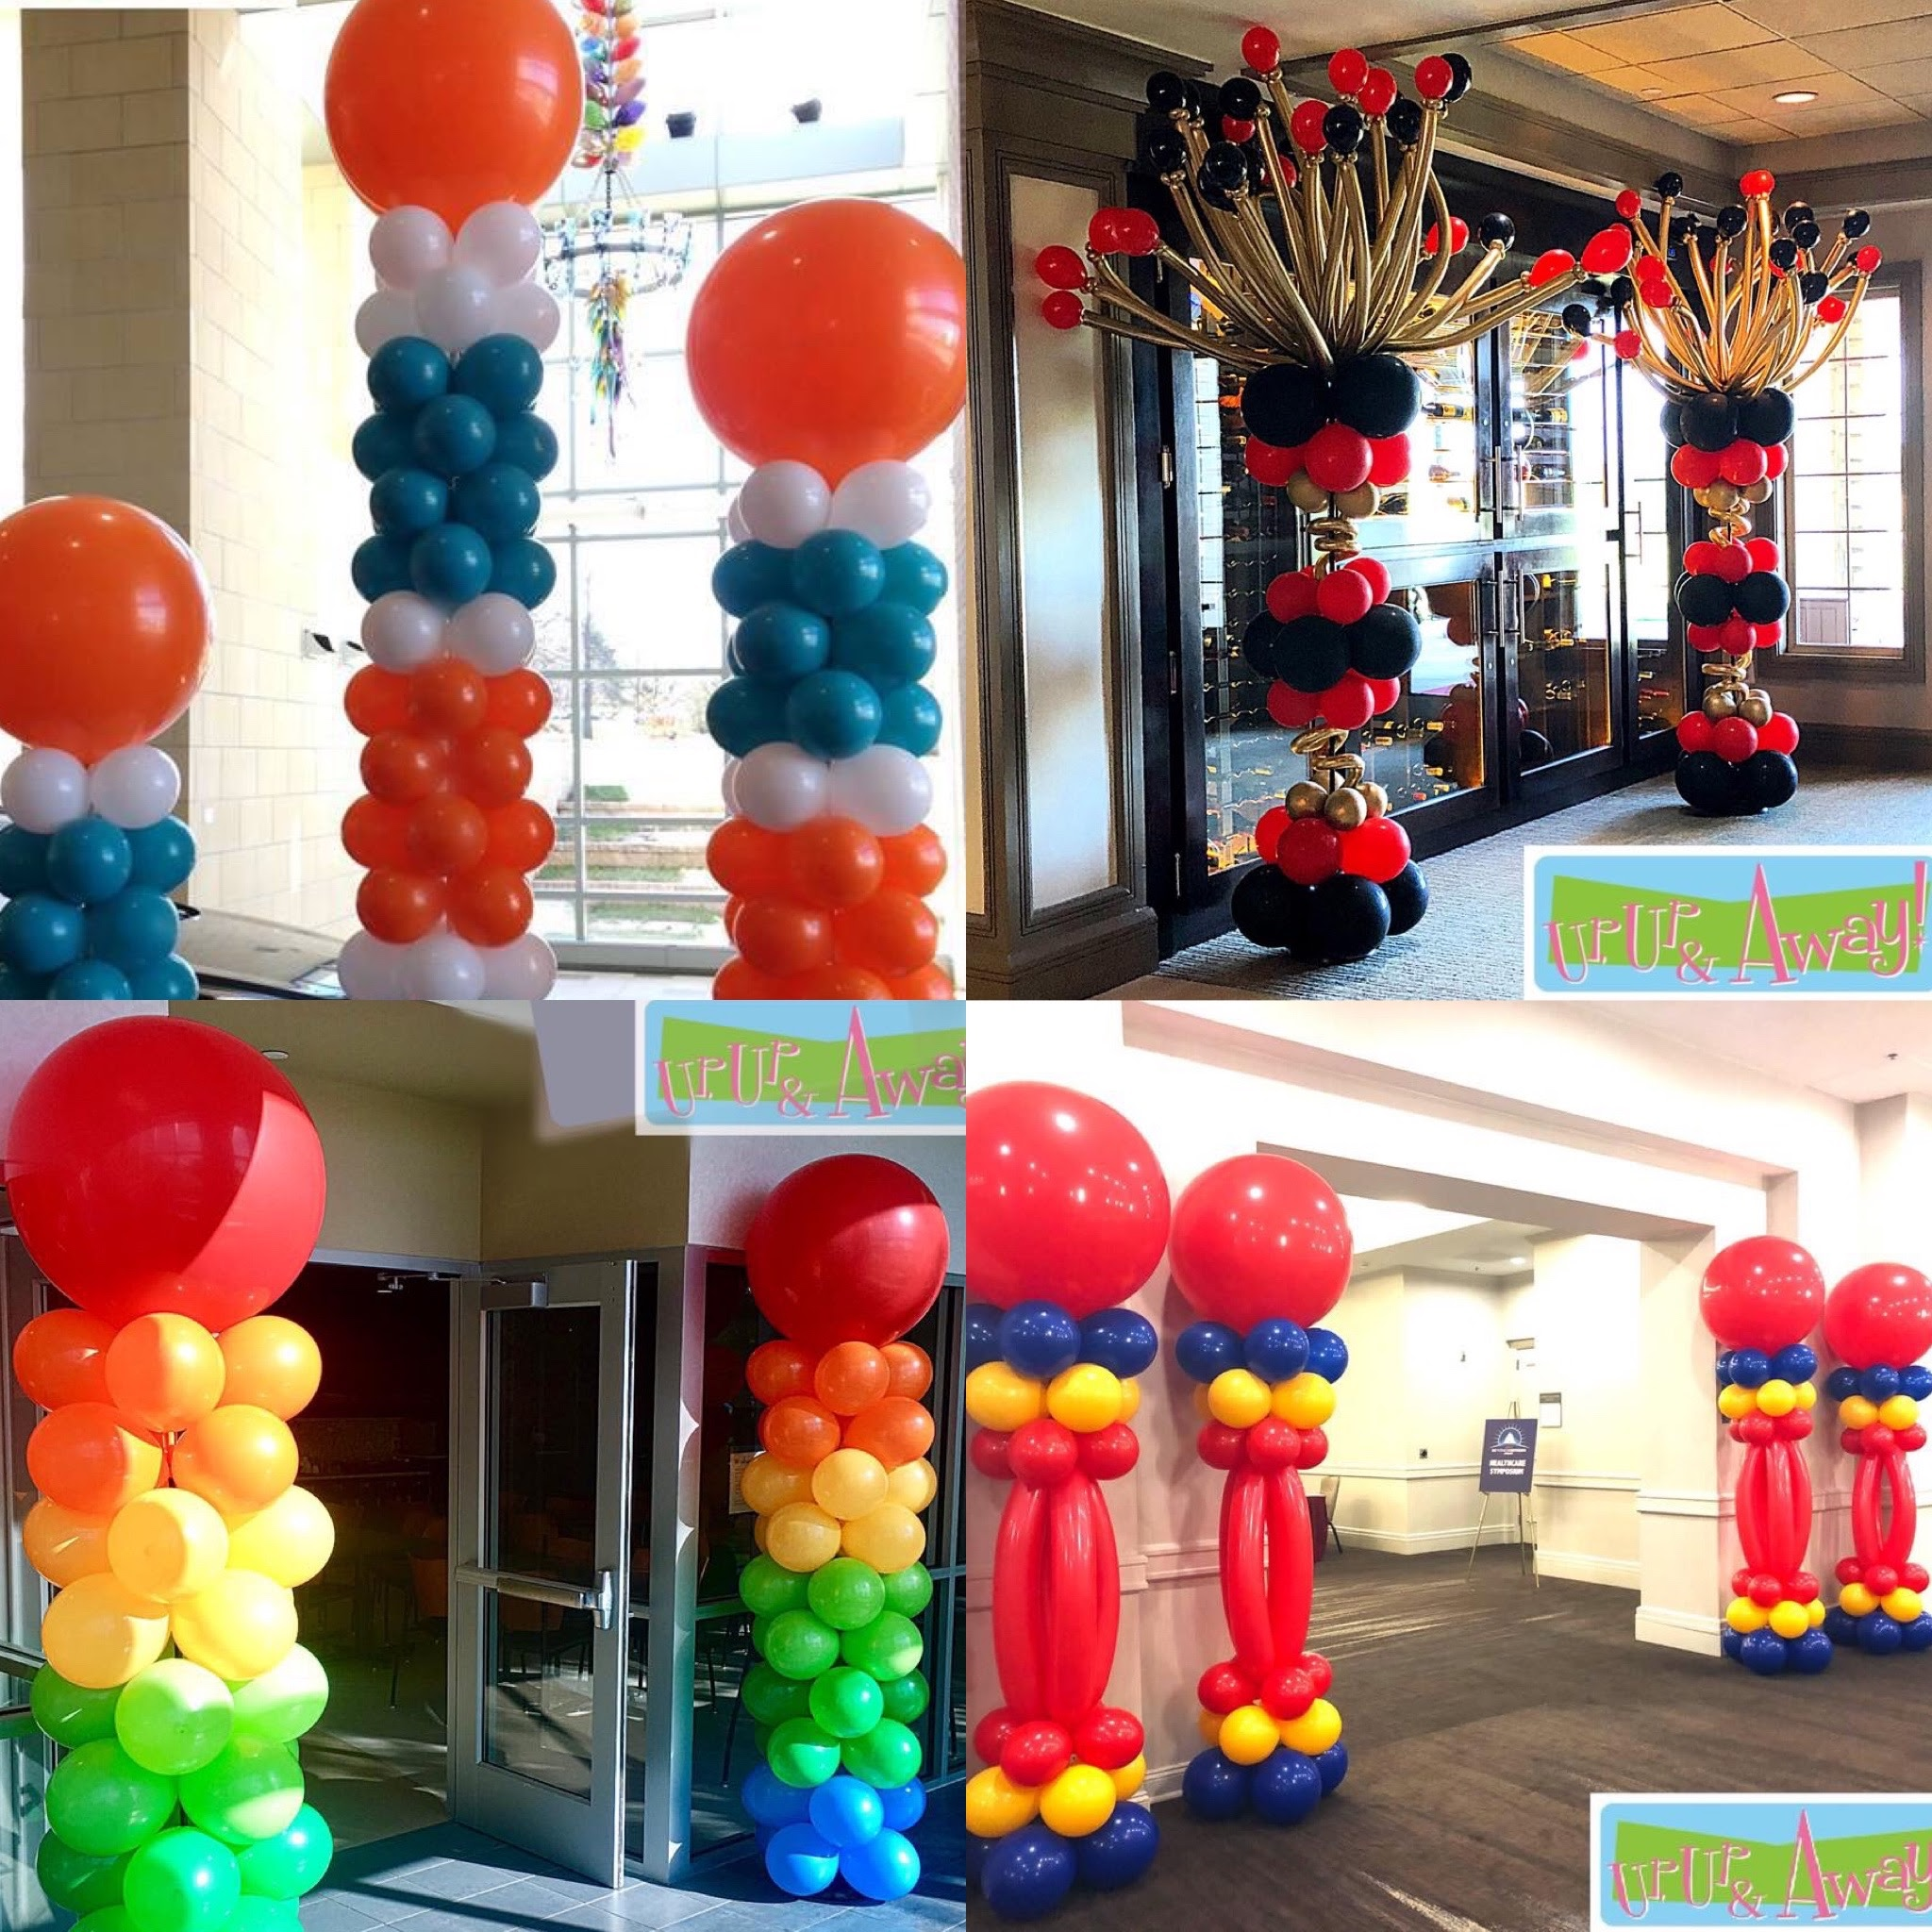 Up, Up & Away! Balloon Columns